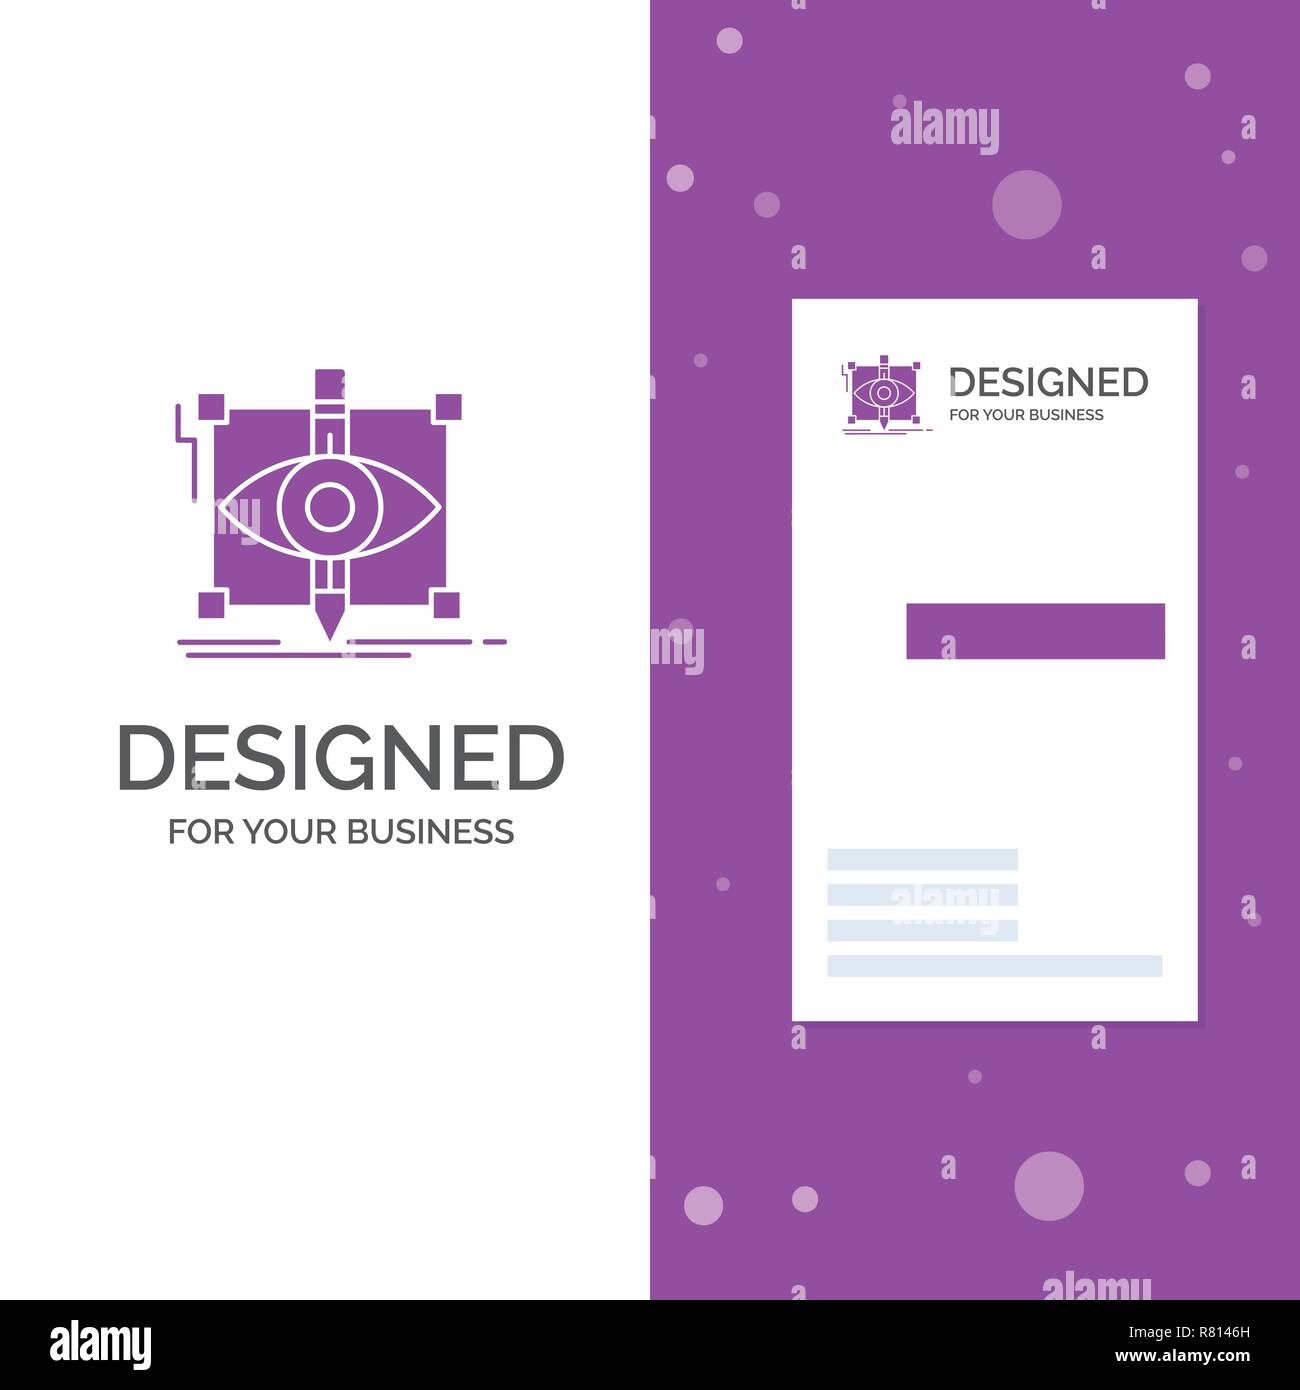 Business Logo for design, draft, sketch, sketching, visual. Vertical Purple Business / Visiting Card template. Creative background vector illustration - Stock Image